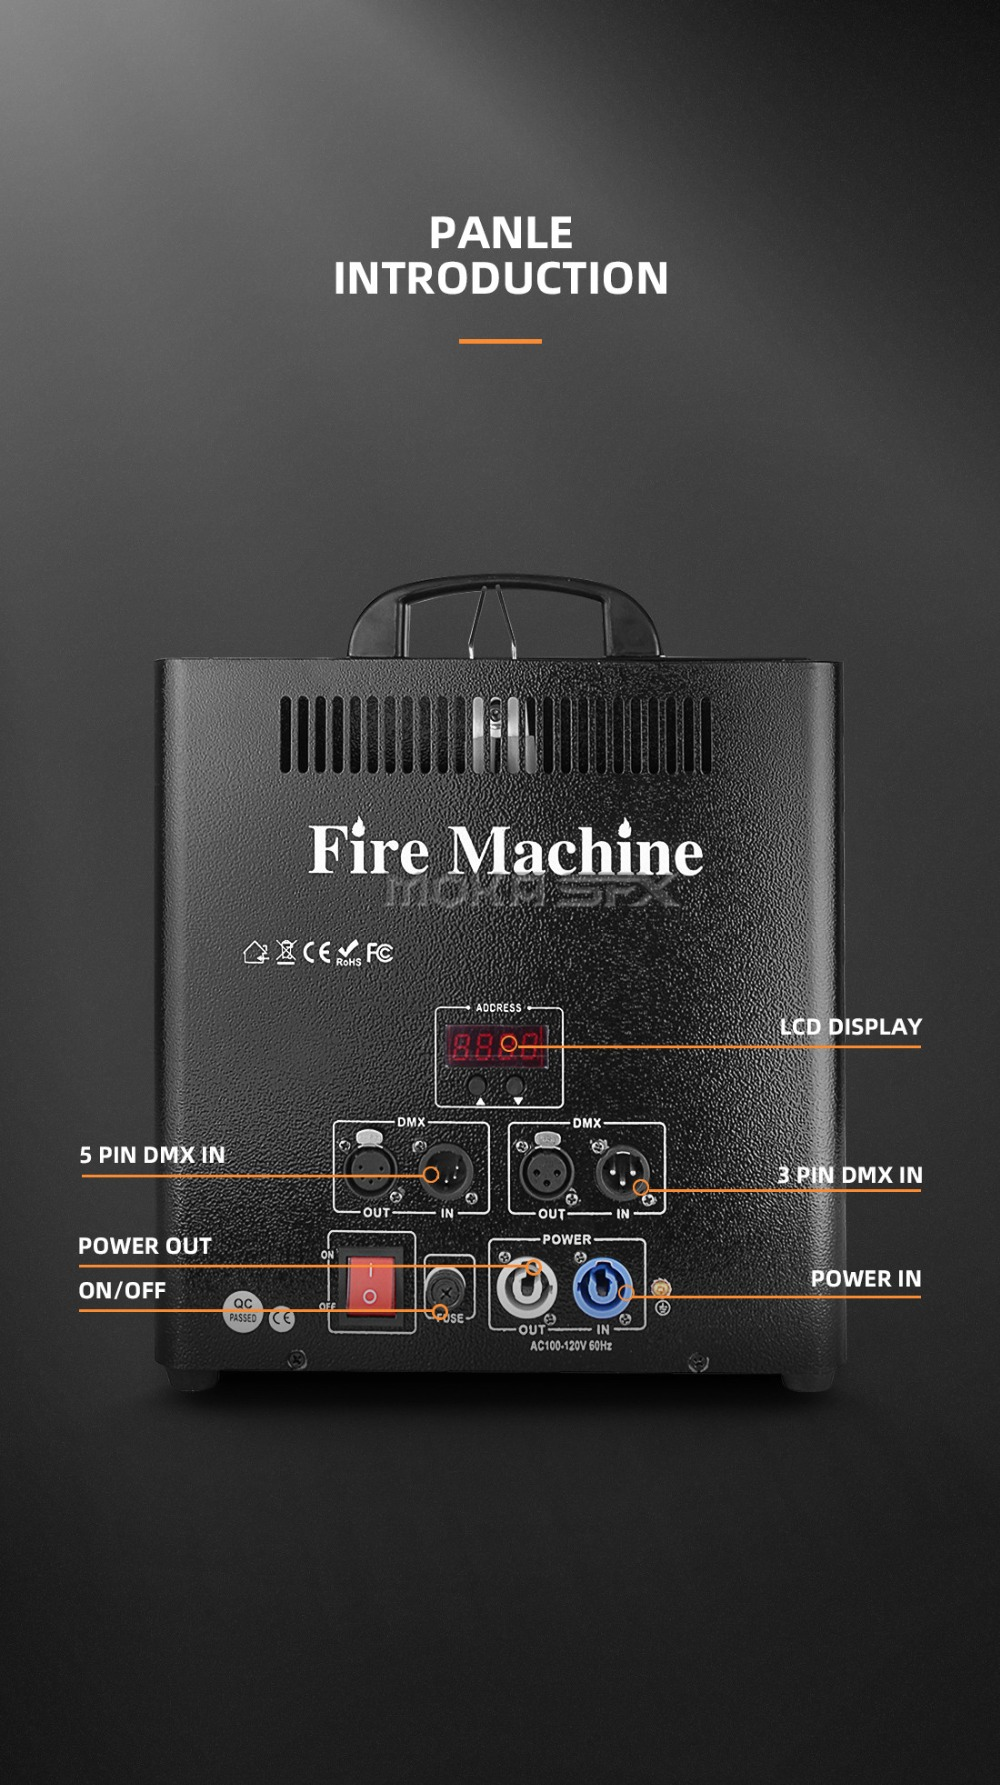 flame machine (2)